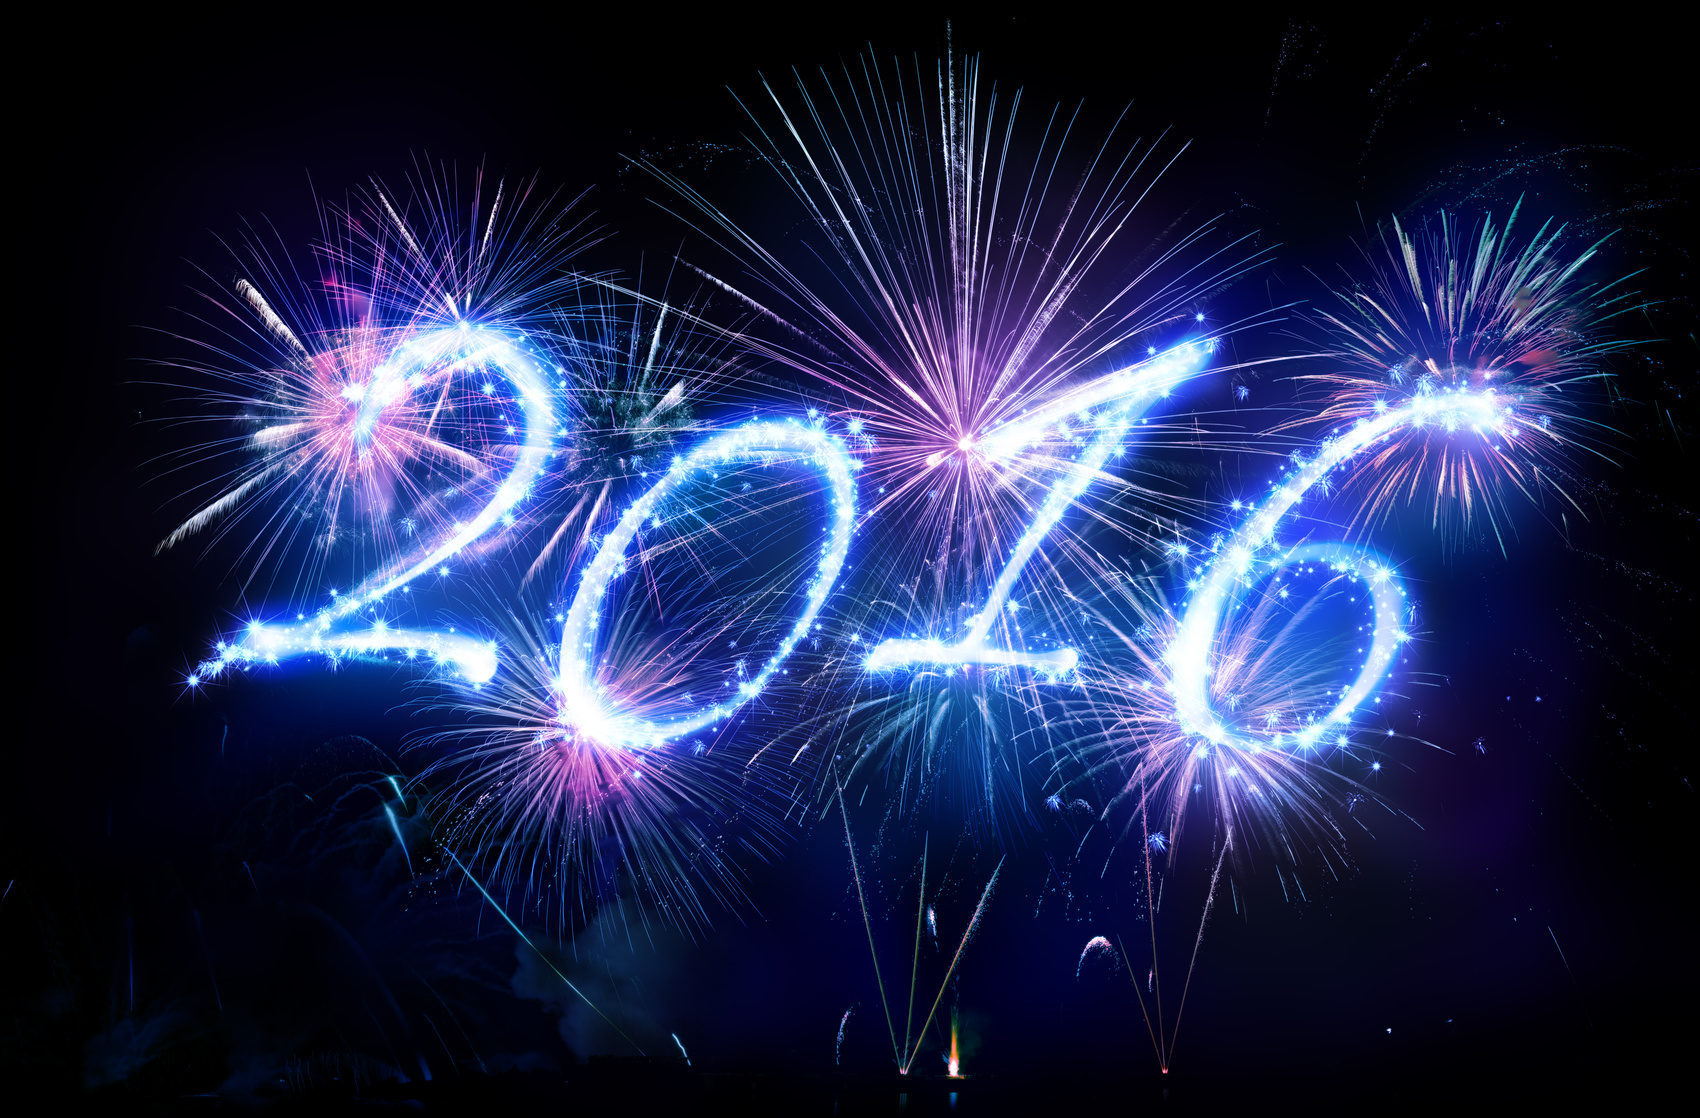 Happy New Year 2016 - Written With Fireworks